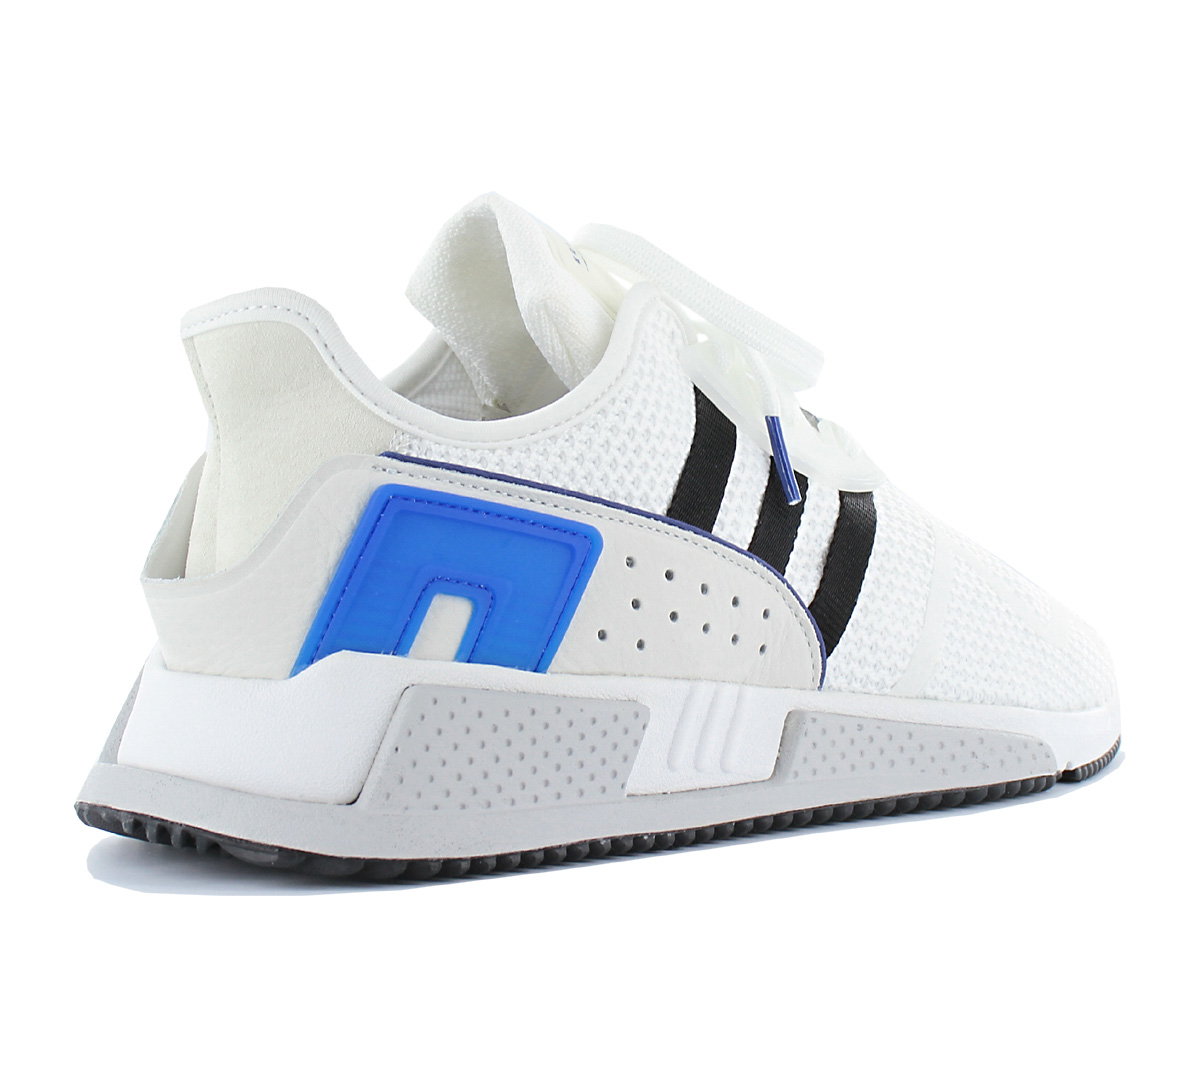 fb942c944ba16 Adidas Equipment Cushion Adv Men s Sneakers Shoes Bask Support Eqt ...